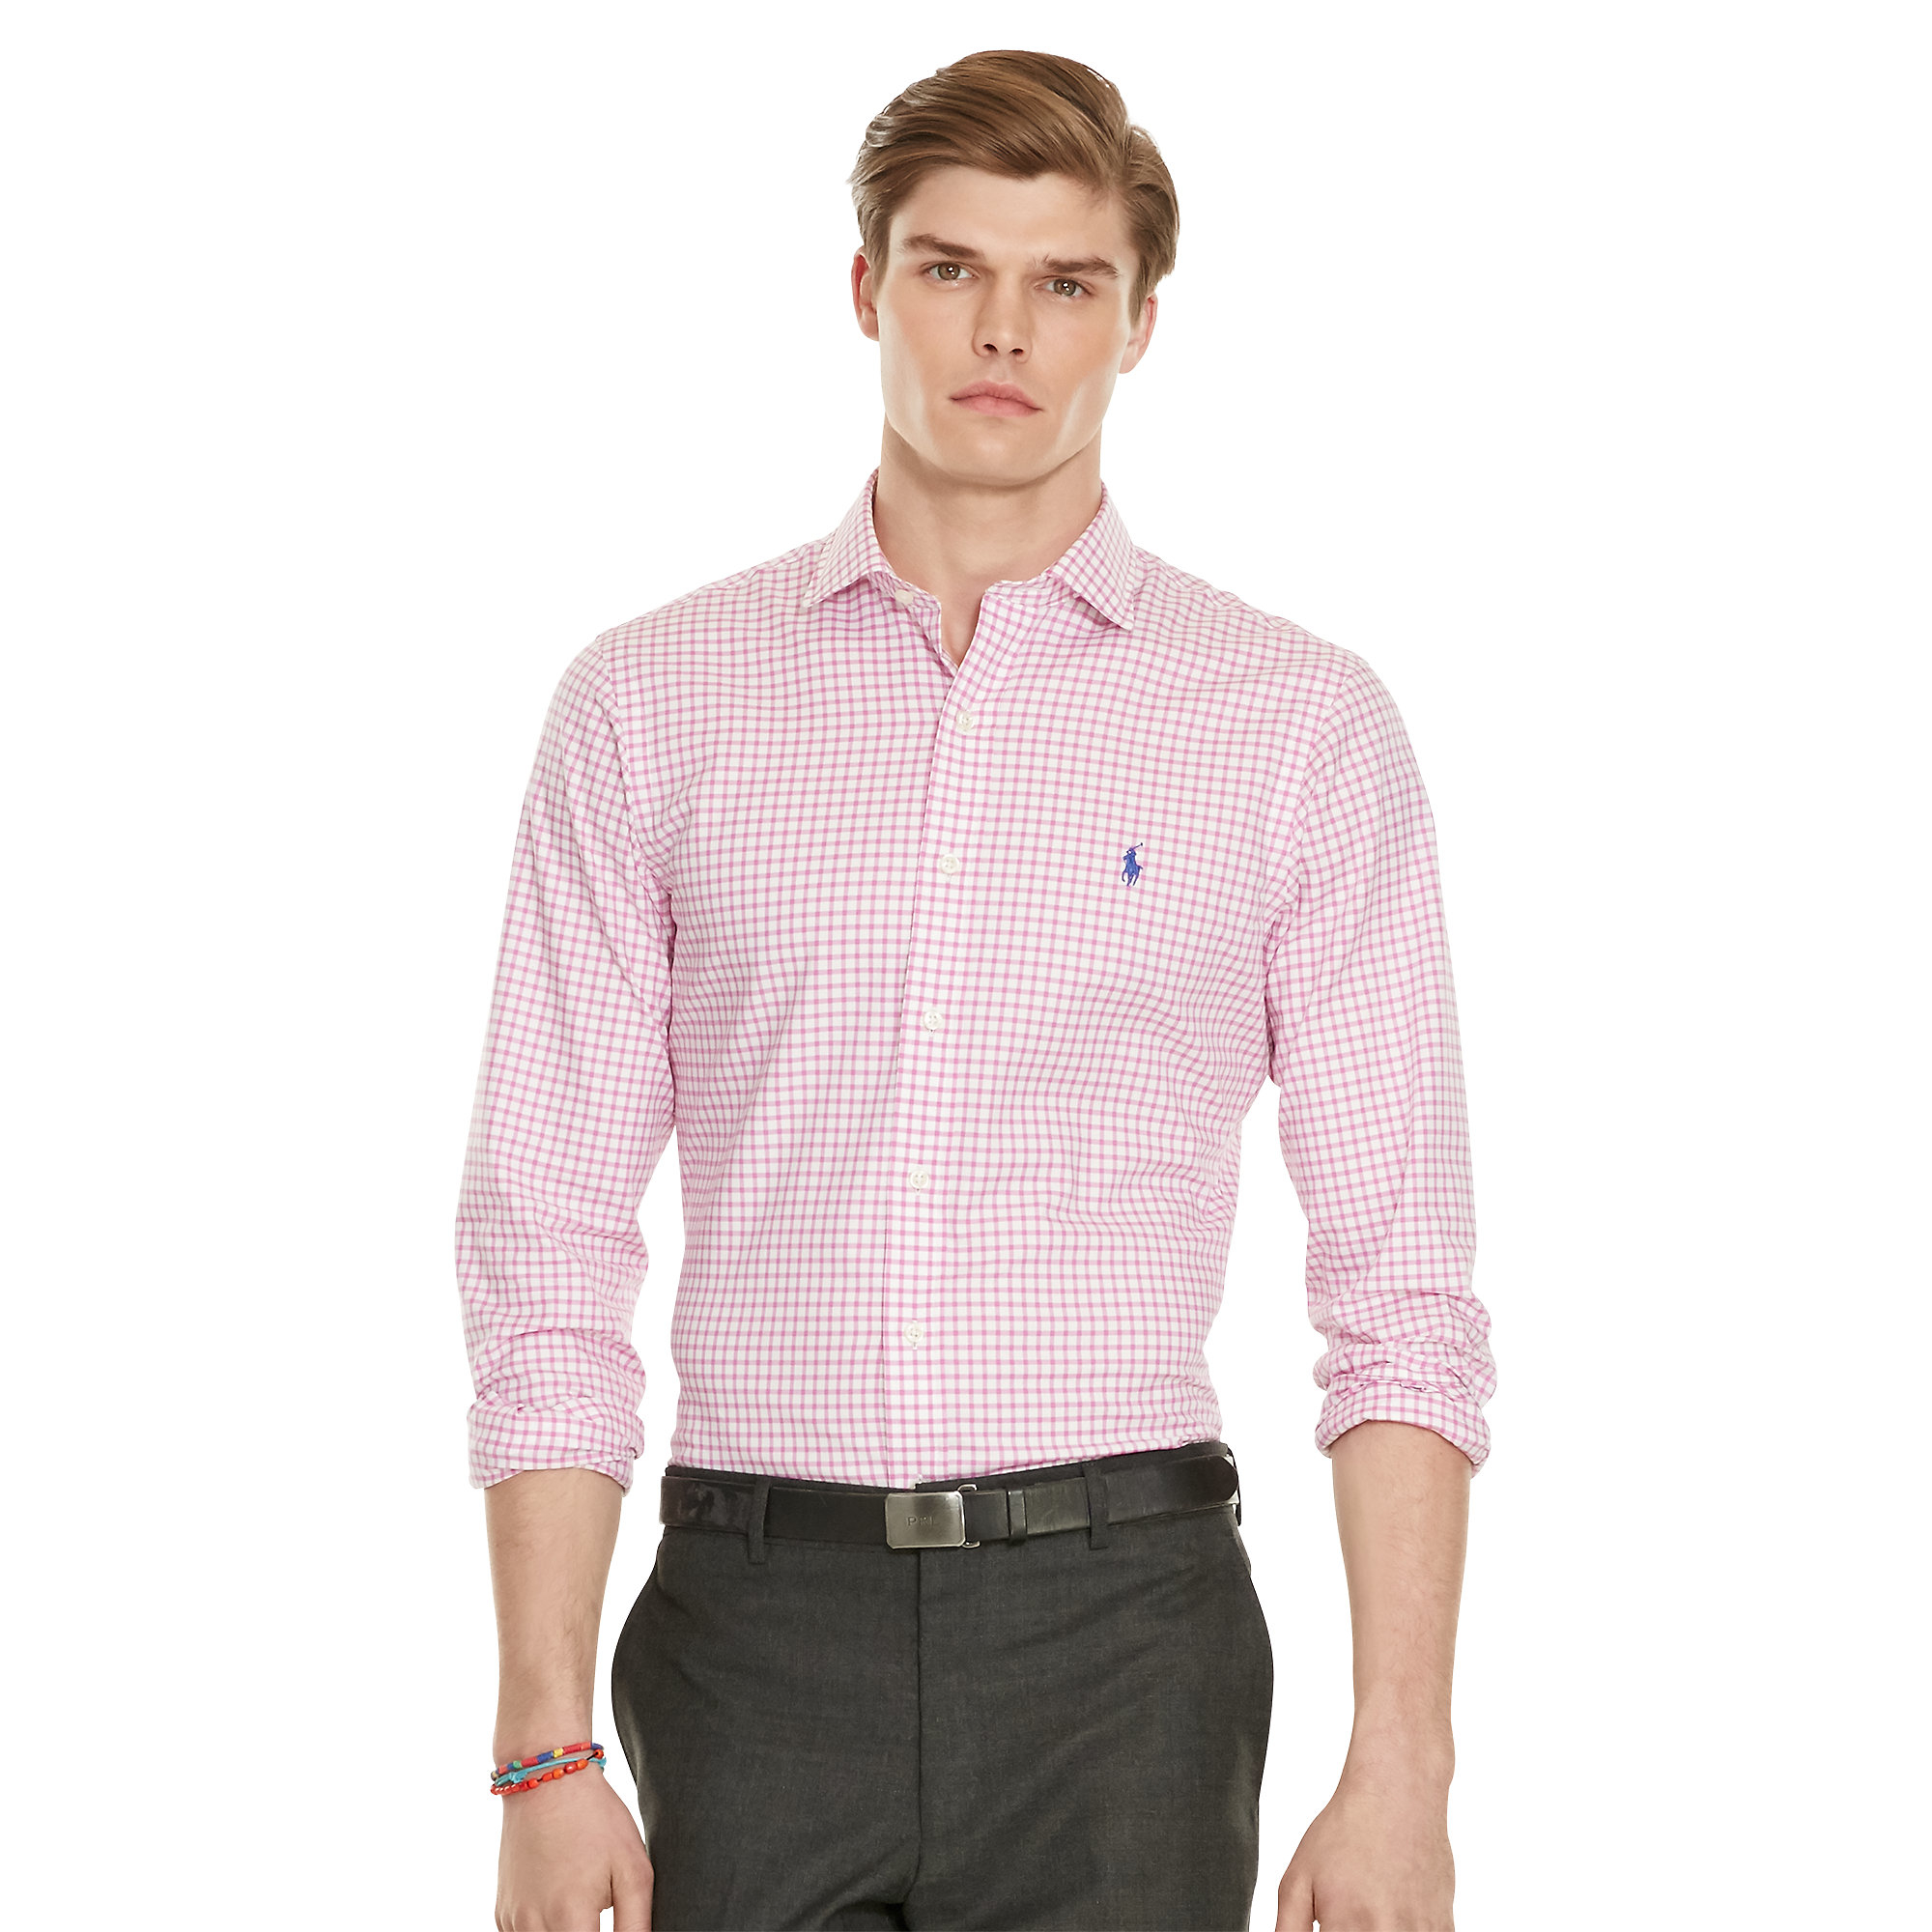 2ee0510772b6 Lyst - Polo Ralph Lauren Slim-fit Gingham Twill Shirt in Pink for Men